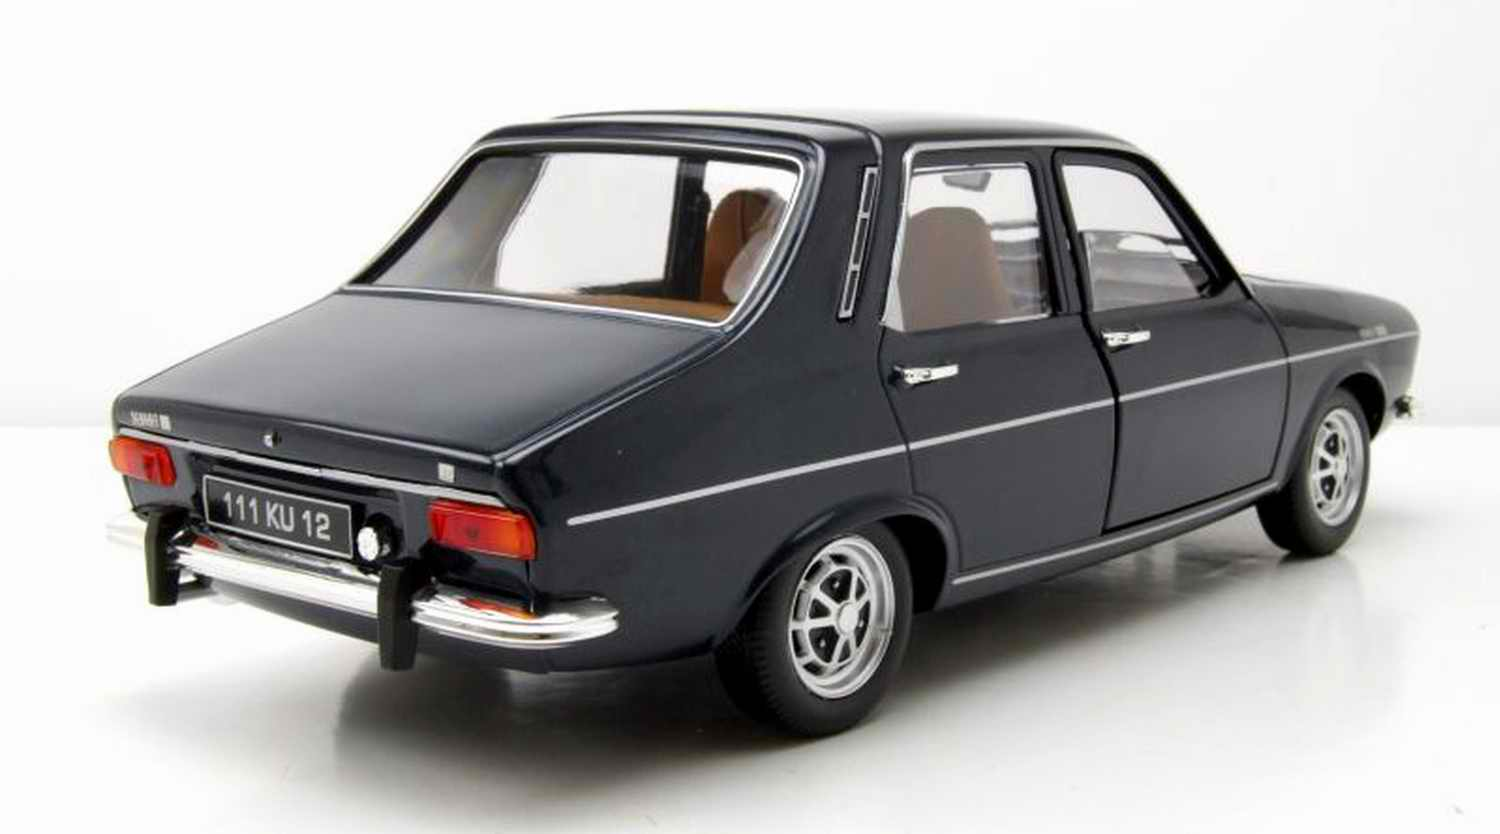 Voiture R12 Miniature RENAULT12TS Norev 1/18